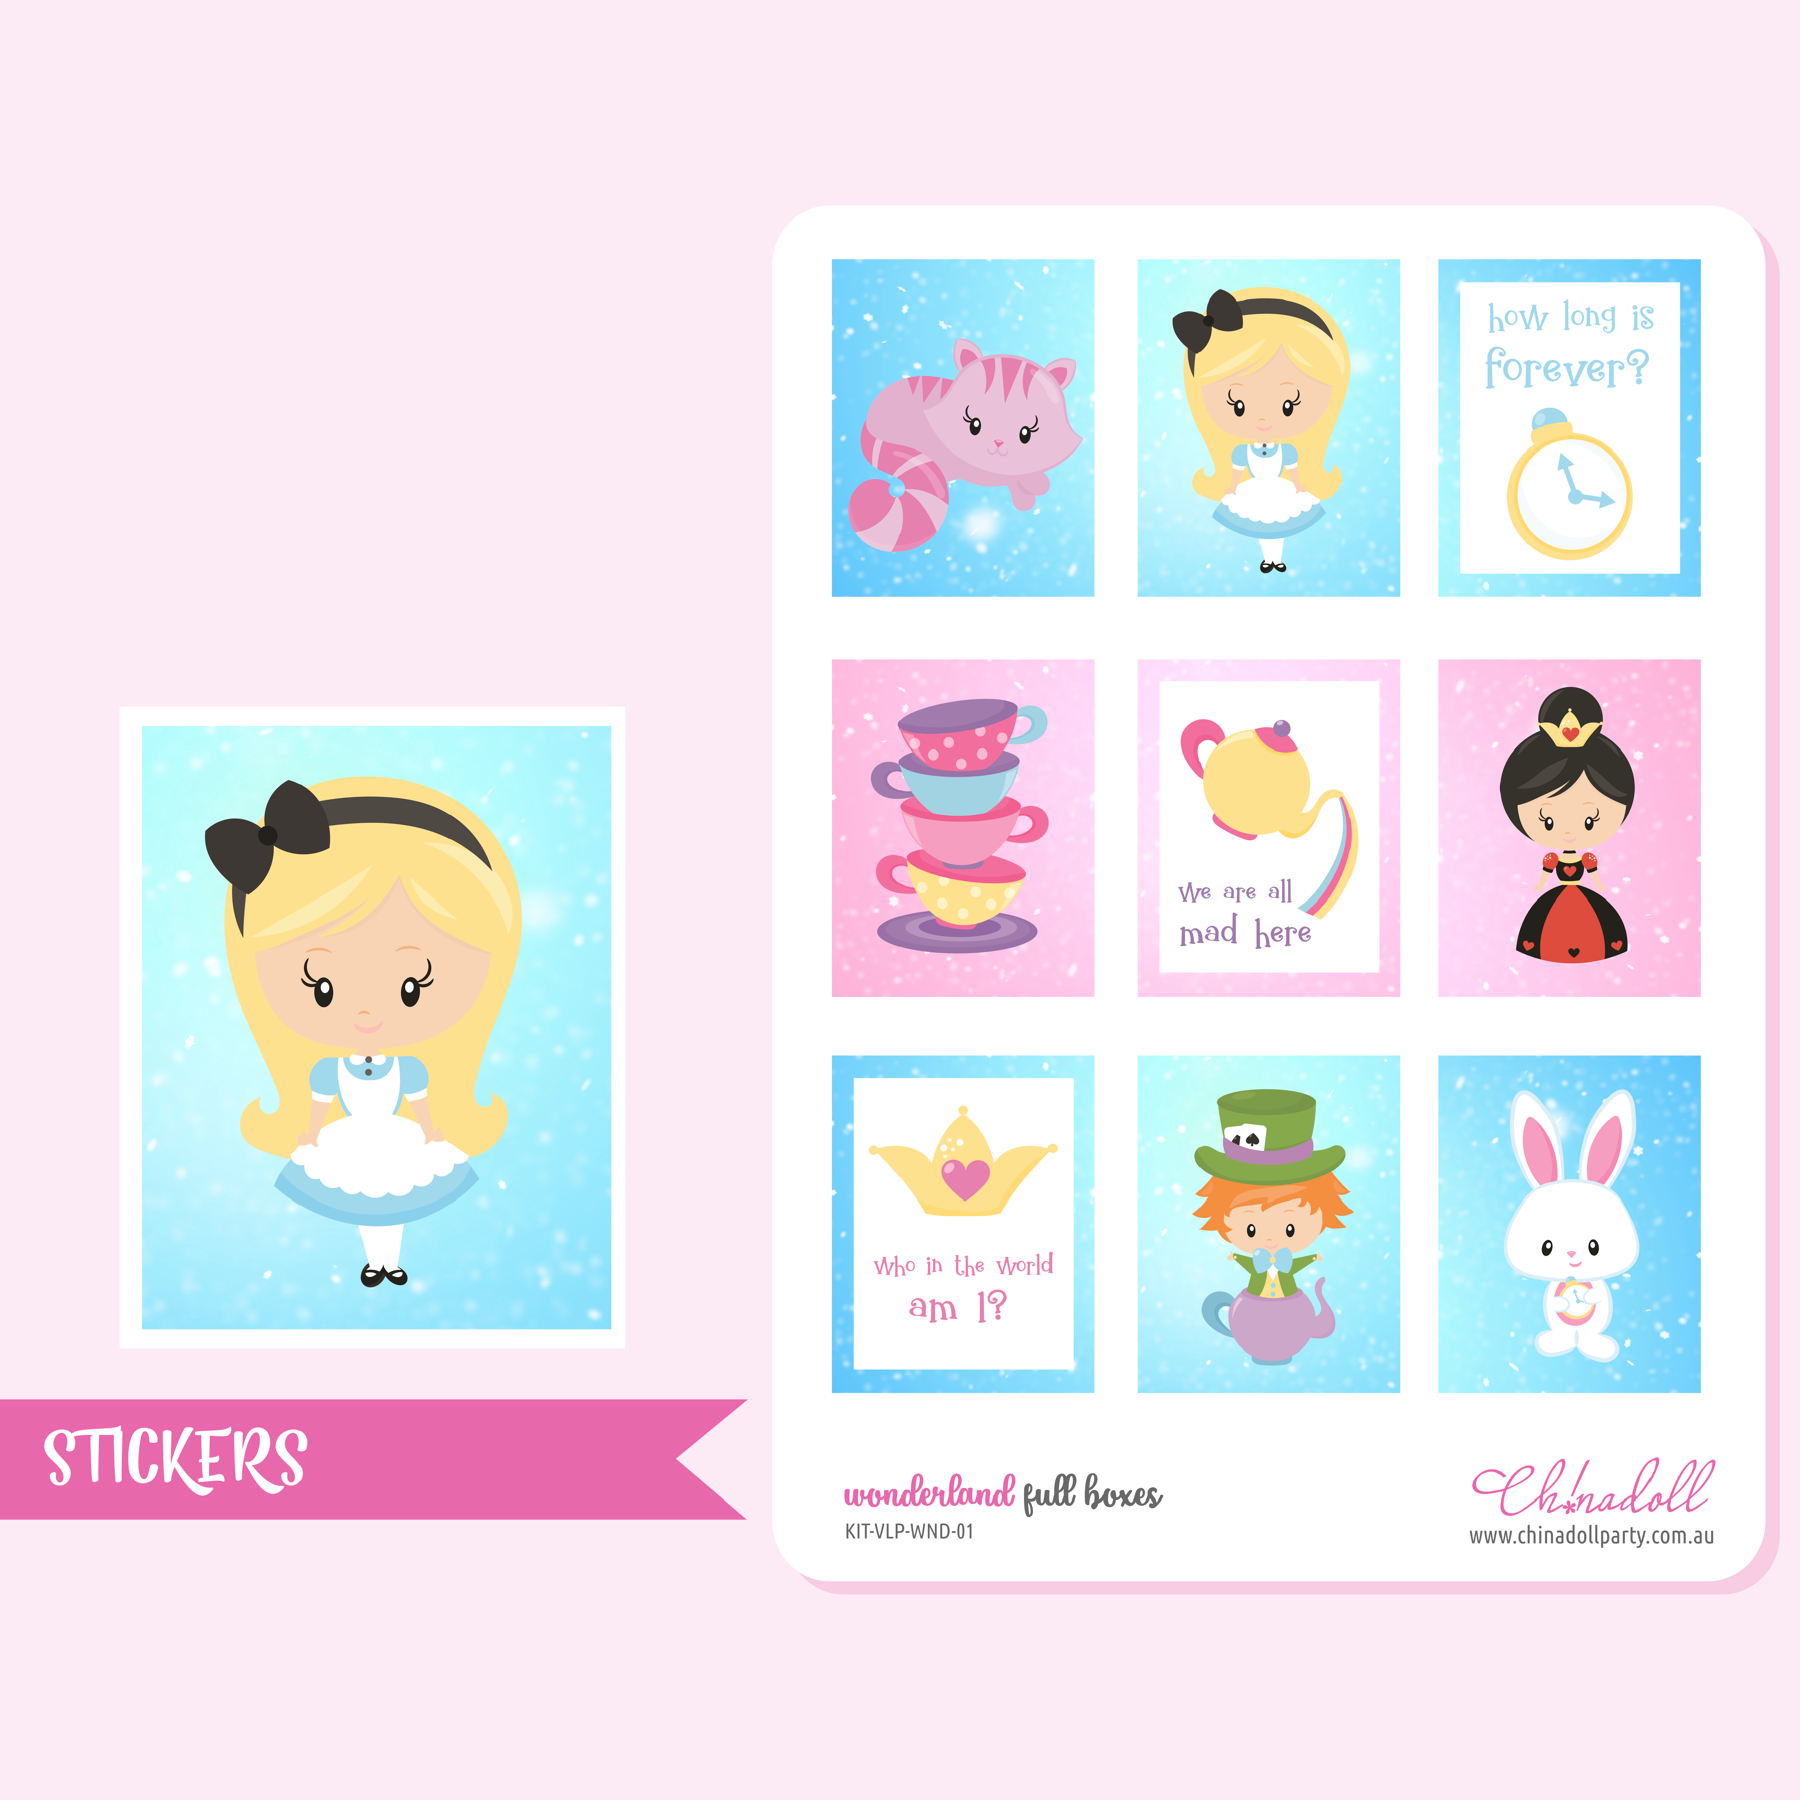 alice in wonderland - full boxes | sticker sheet | ECLP vertical | KIT-VLP-WND-01